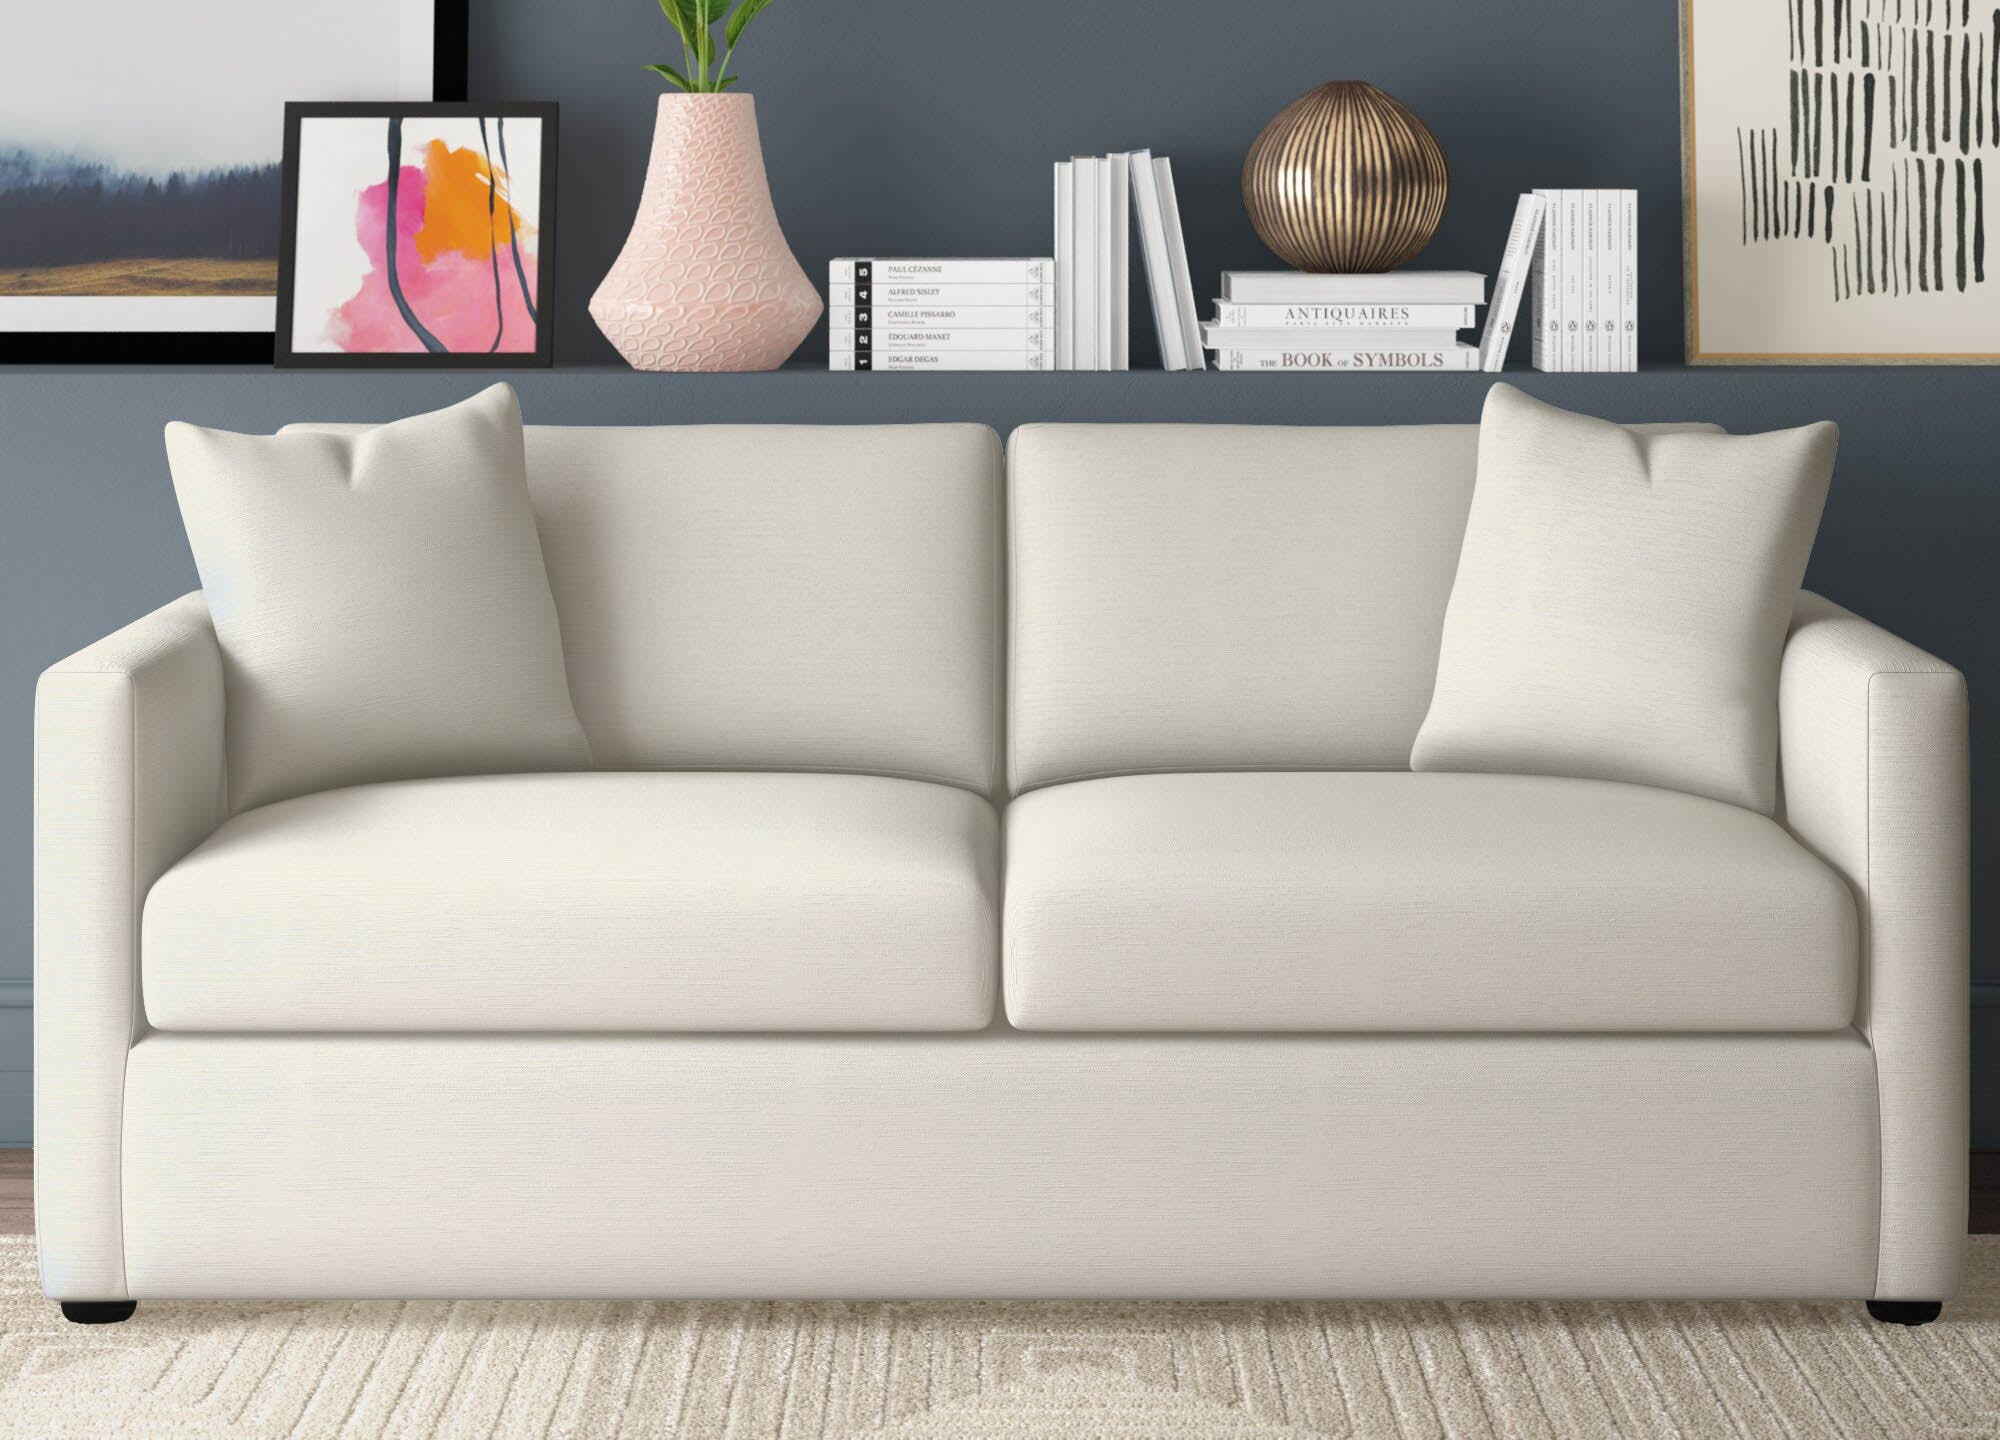 The Best Presidents Day Sale Furniture 2021 Purewow